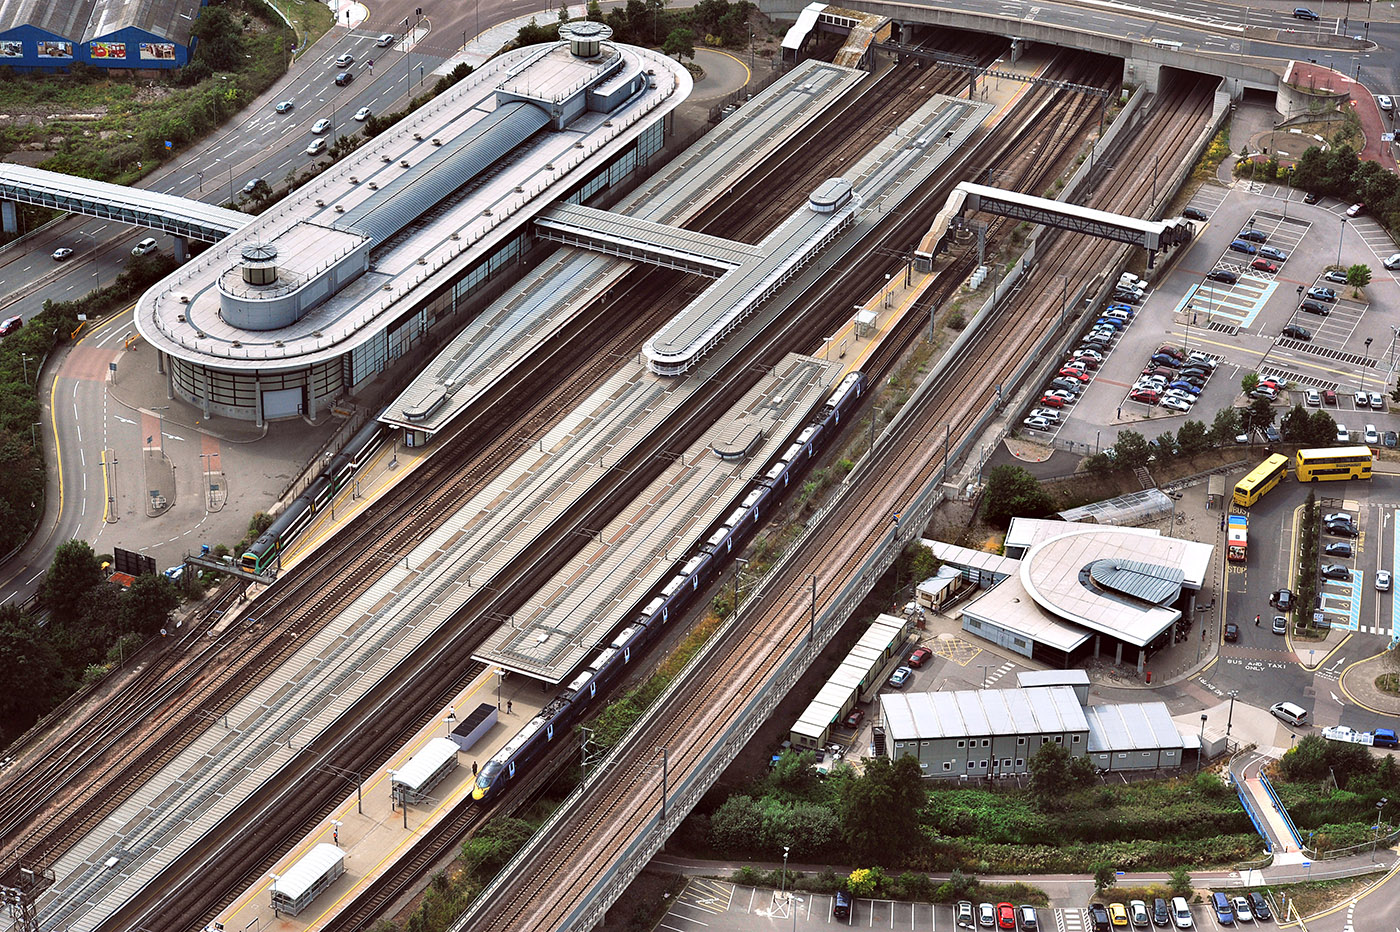 Ashford International Station from the air